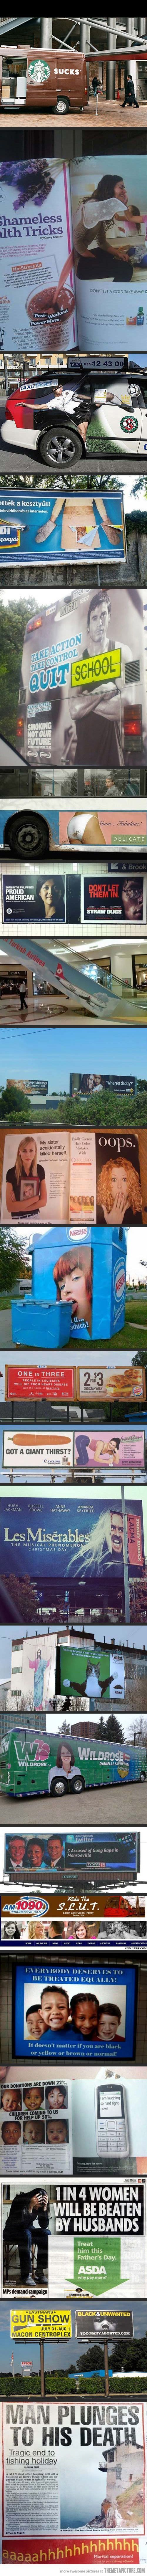 23 unfortunate advertising placements lol